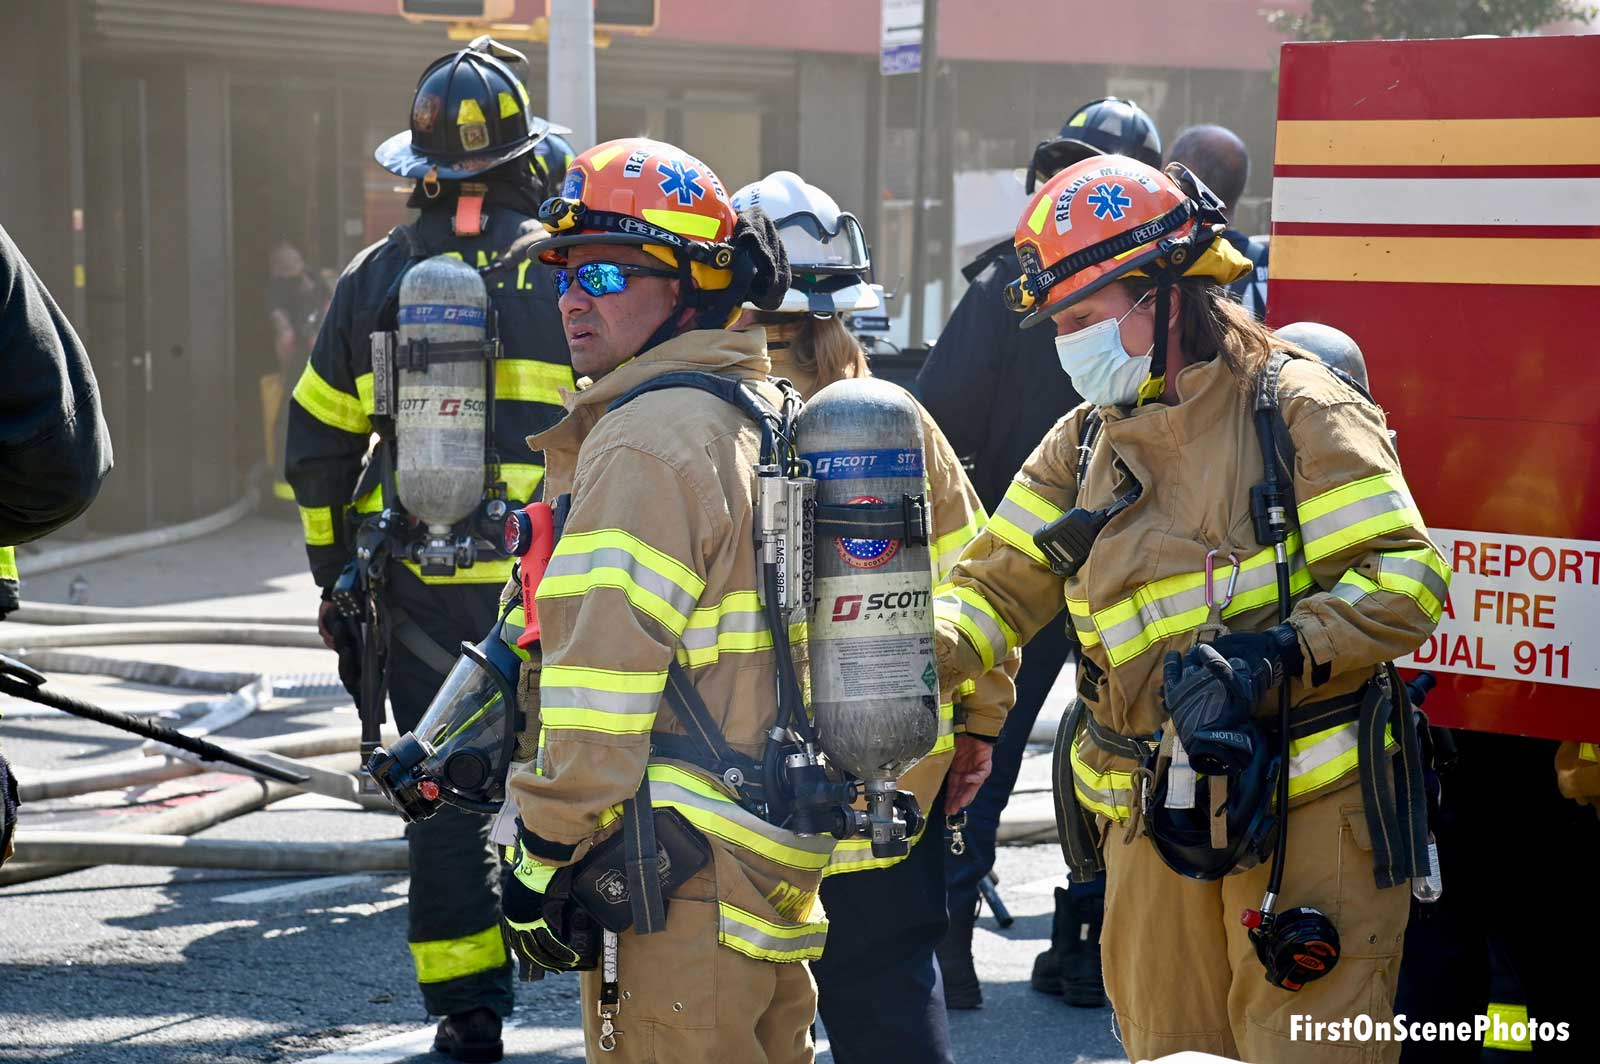 Firefighters on scene at the fire